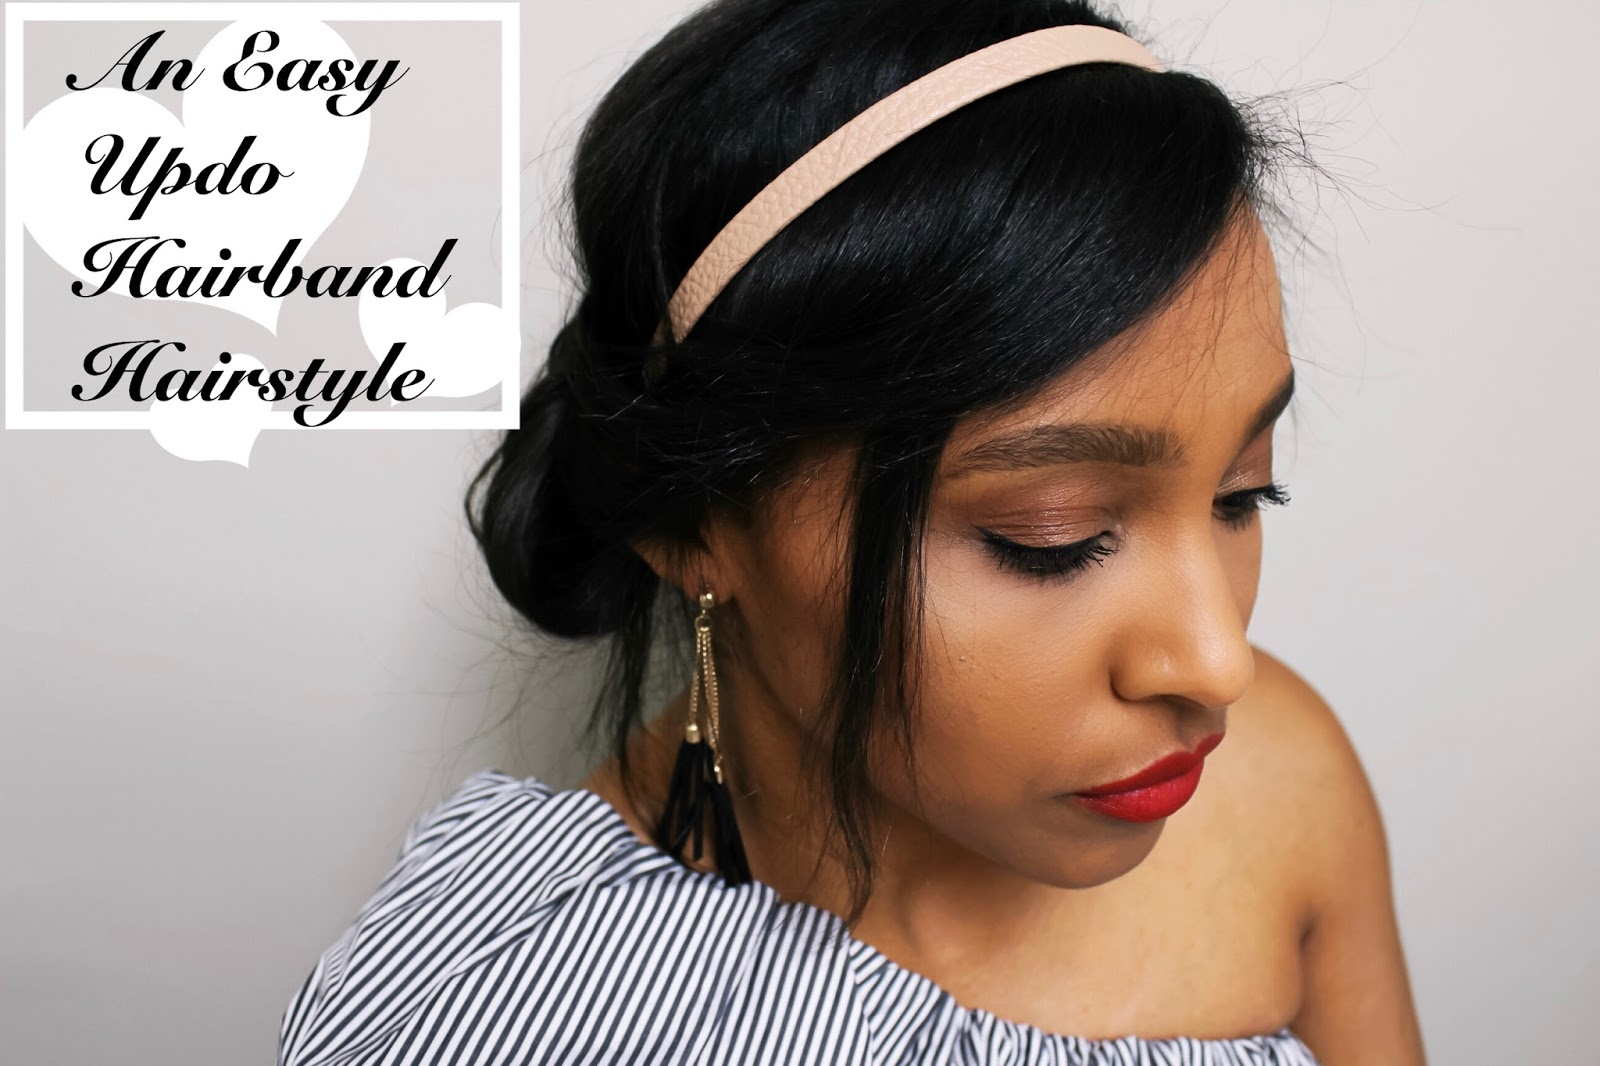 An Easy Updo Hairband Hairstyle, Fromm beauty, head band, boby pin, hair ties, ulta, cvs, hair products, short hair styles, headband hair styles, hair styles for short hair, bob hair cut, hair tutorial